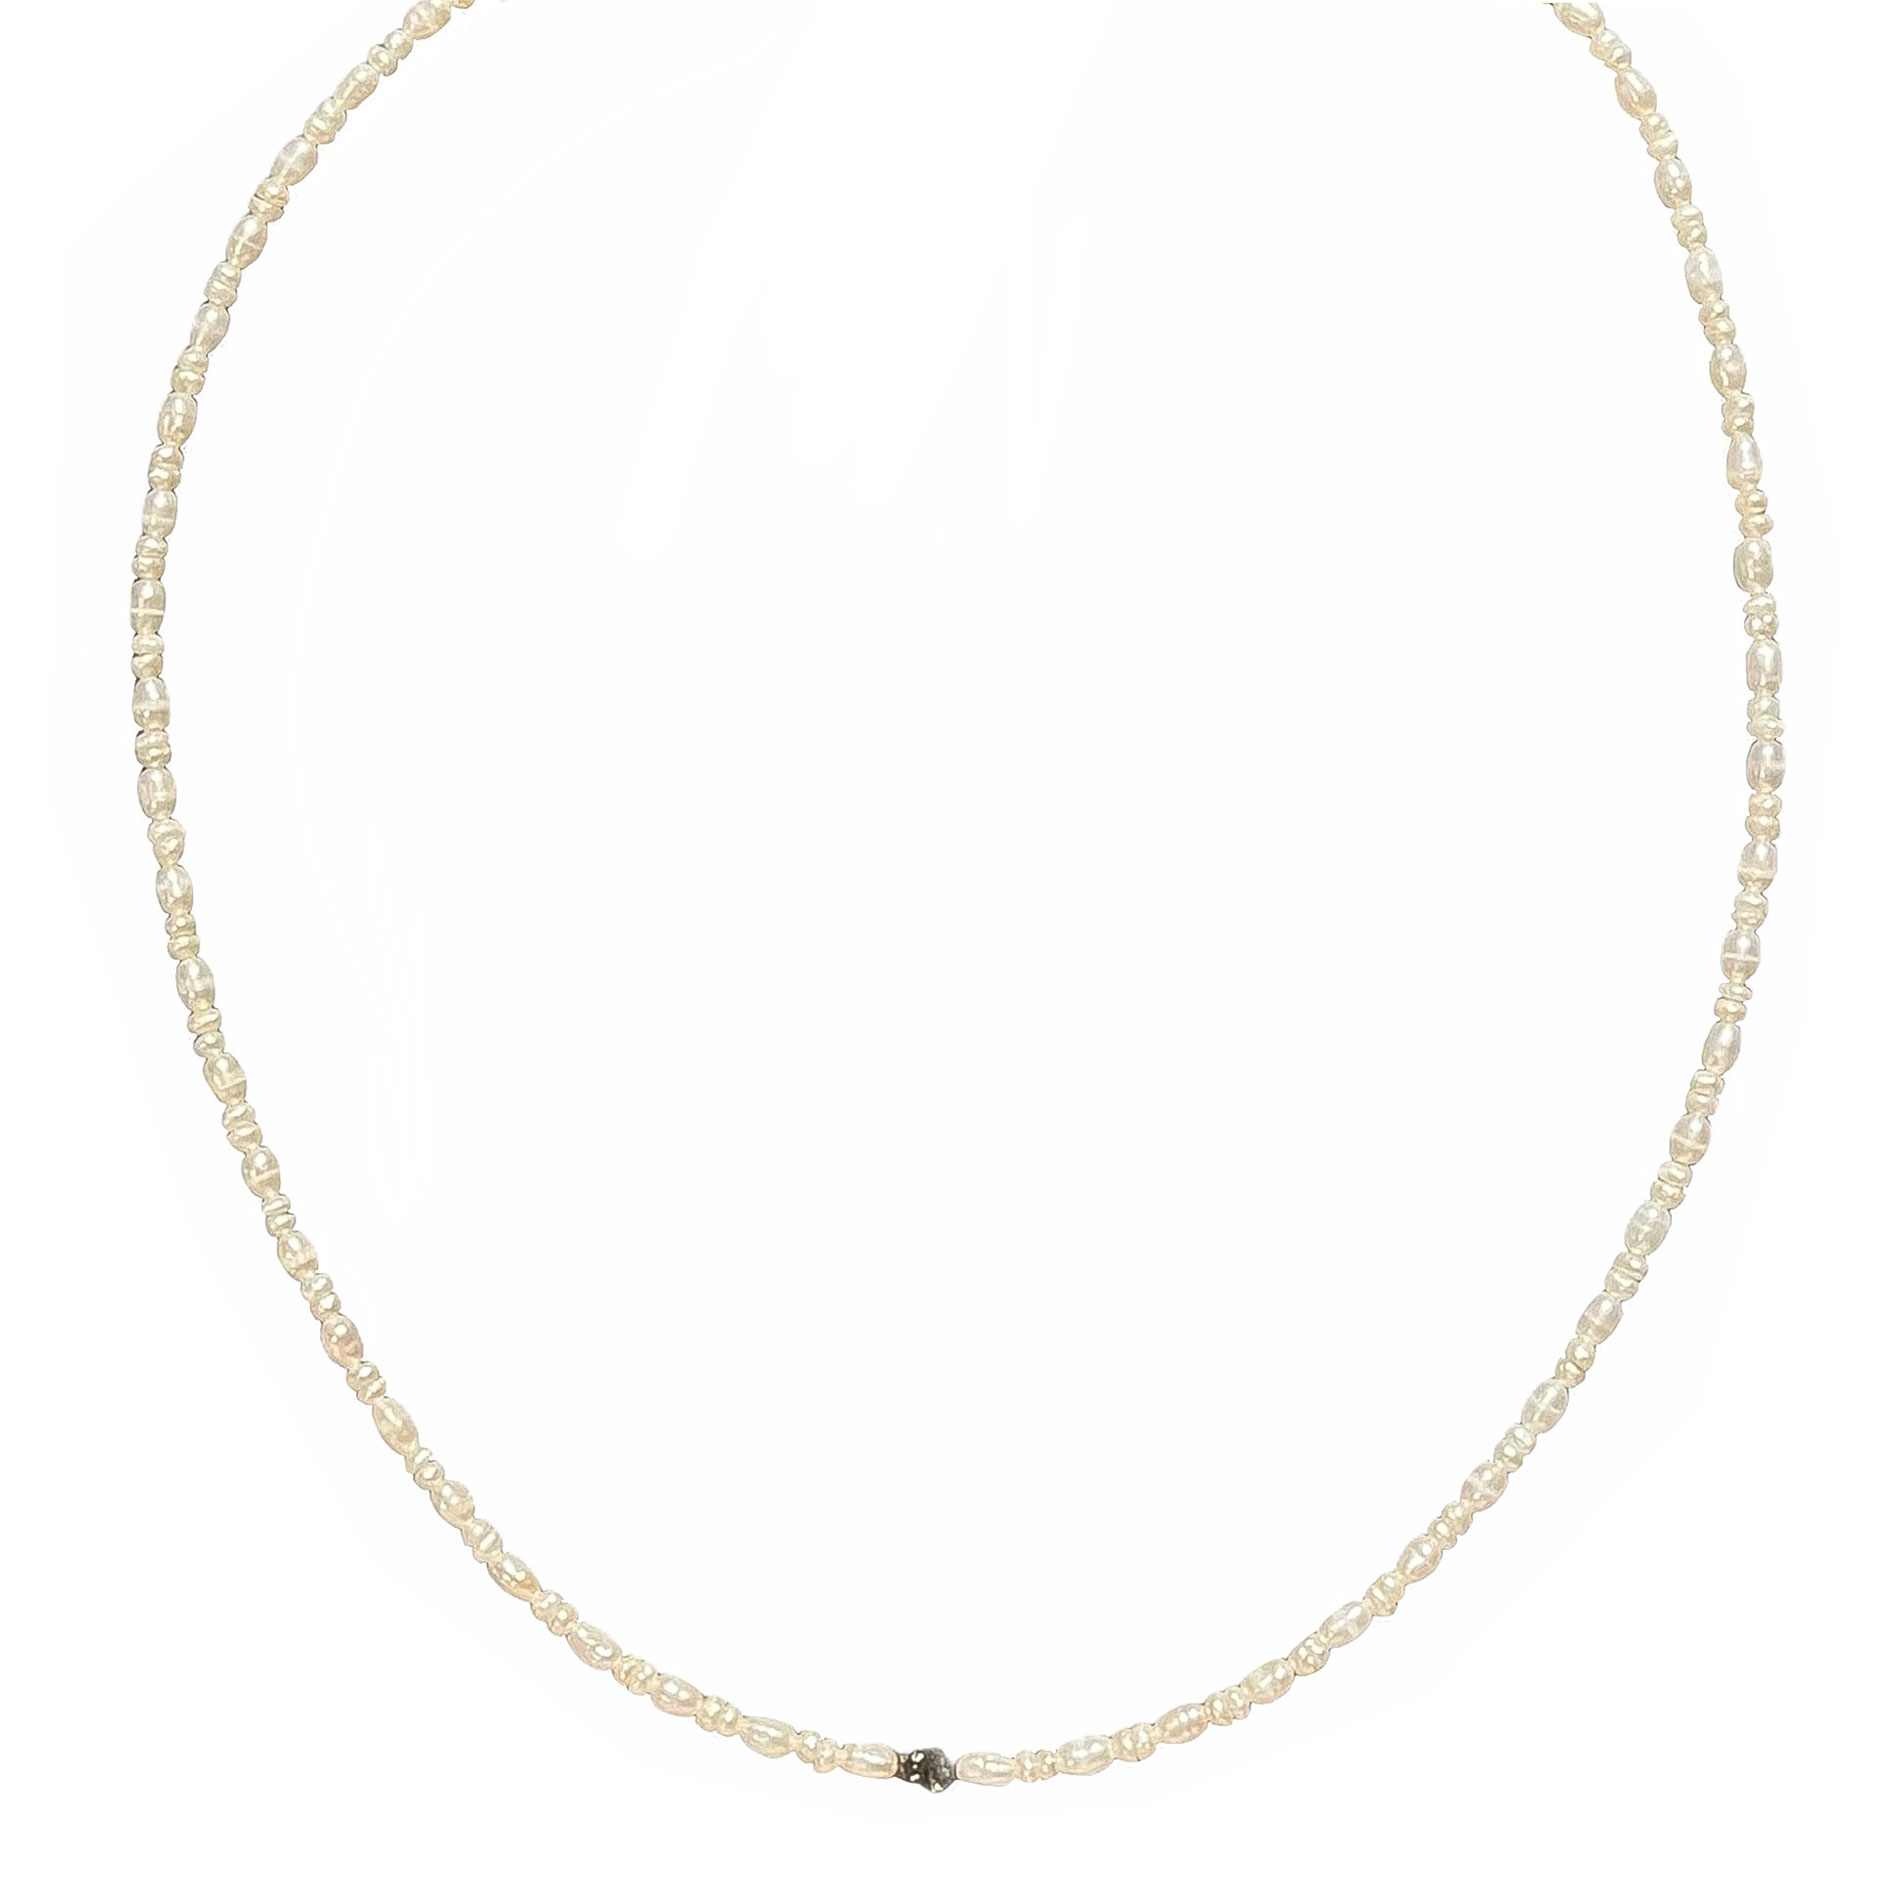 Collier perles de culture diamants bruts